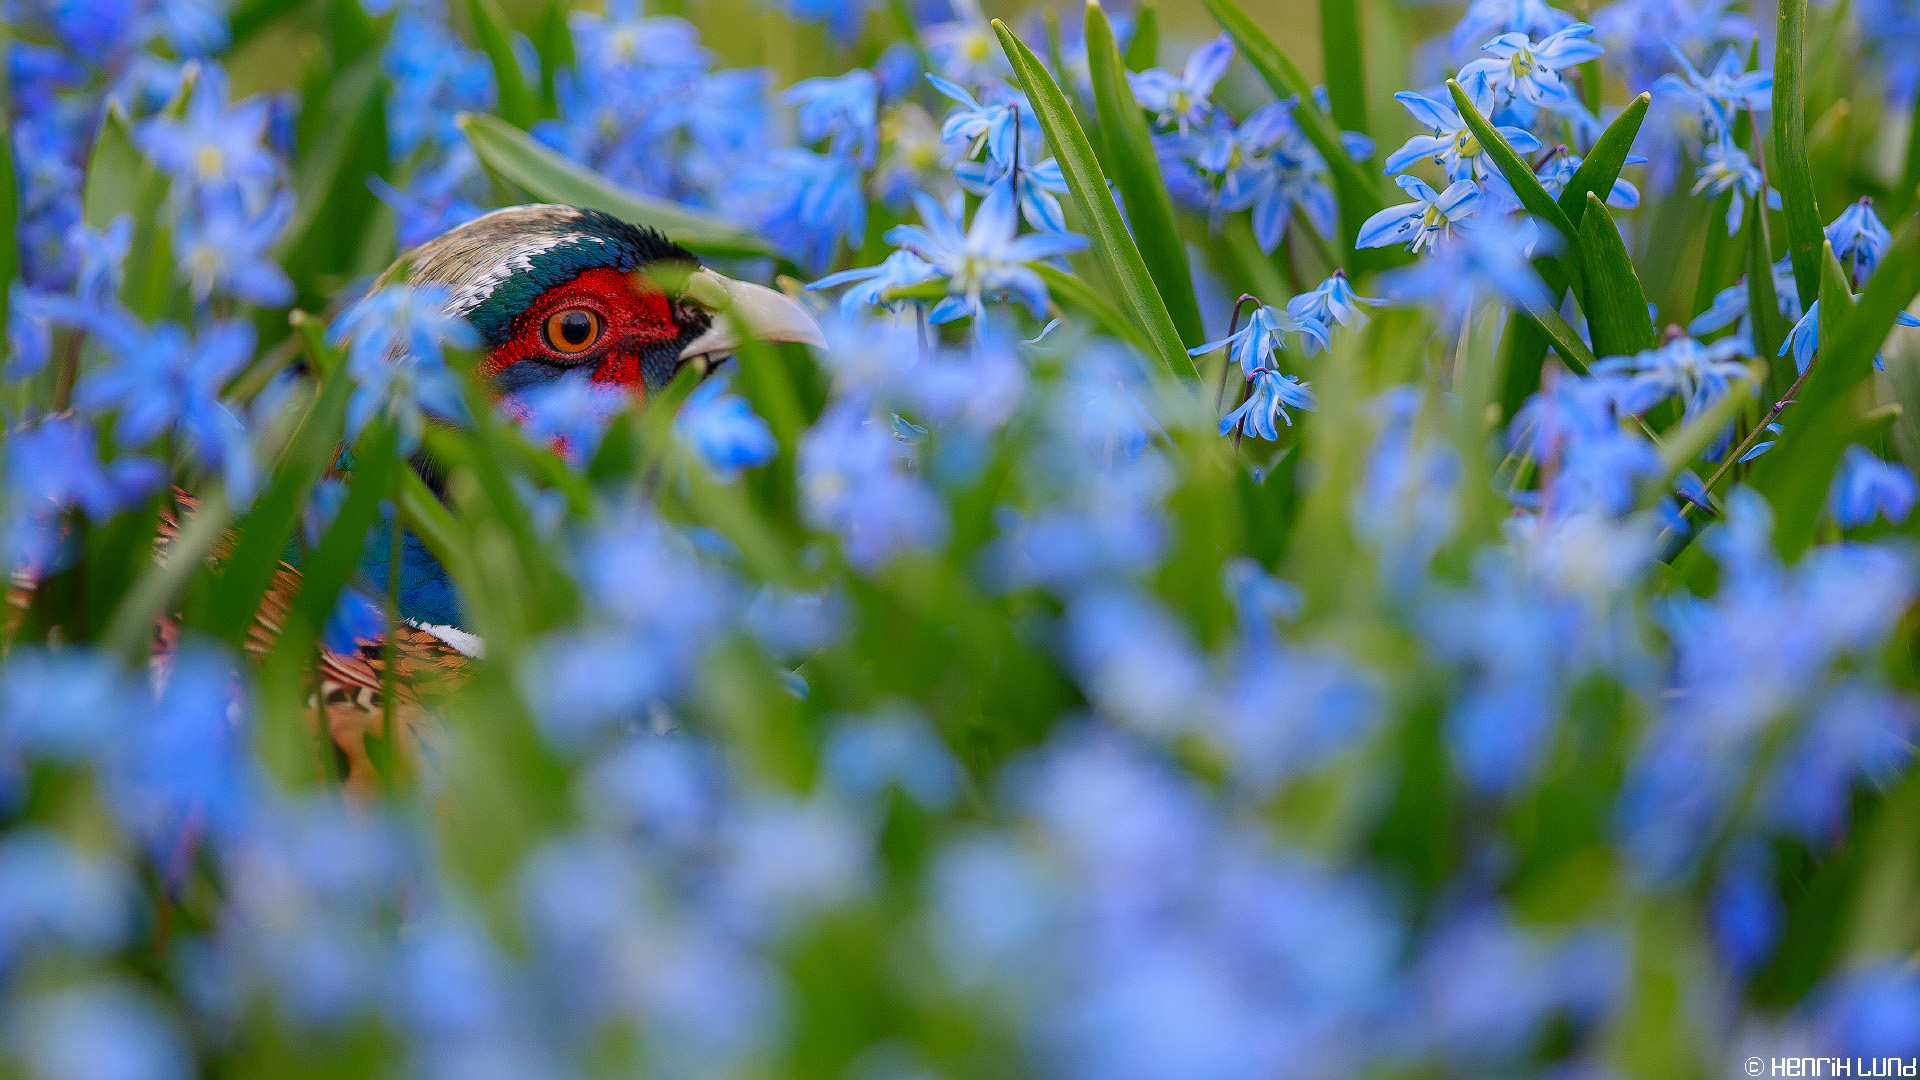 A pheasant seeking hide from its rivals in the blue flower mat on our yard. Lappträsk, Finland, April 2014.